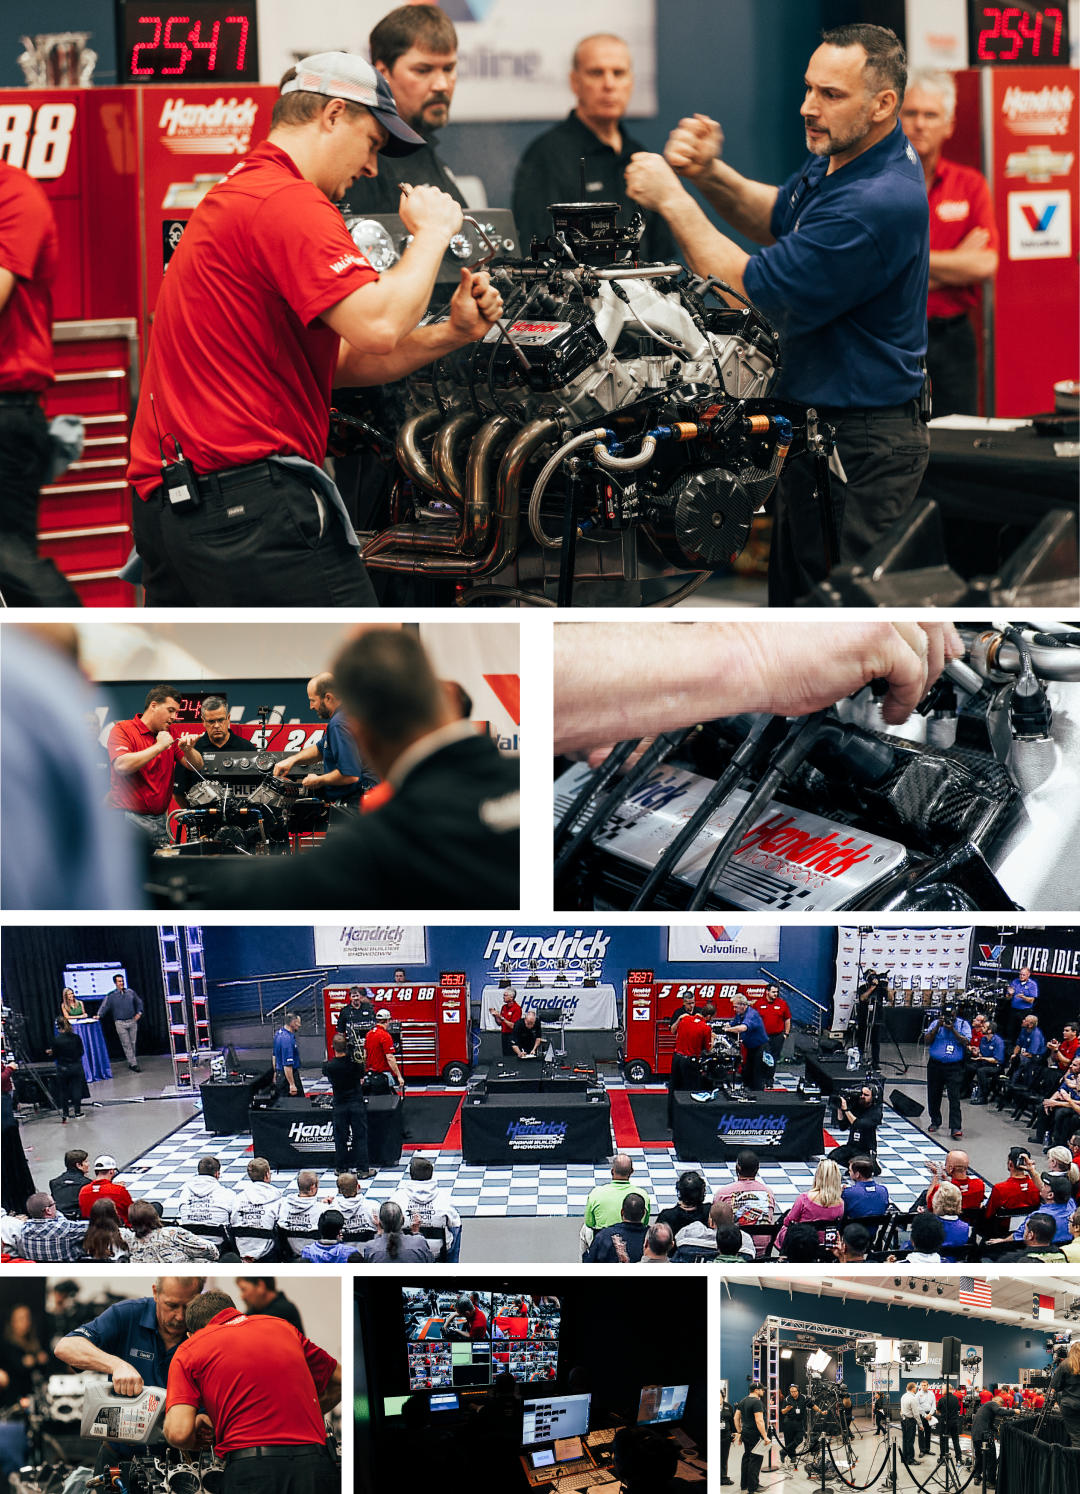 Hendrick:  We love the smell of engines in the...